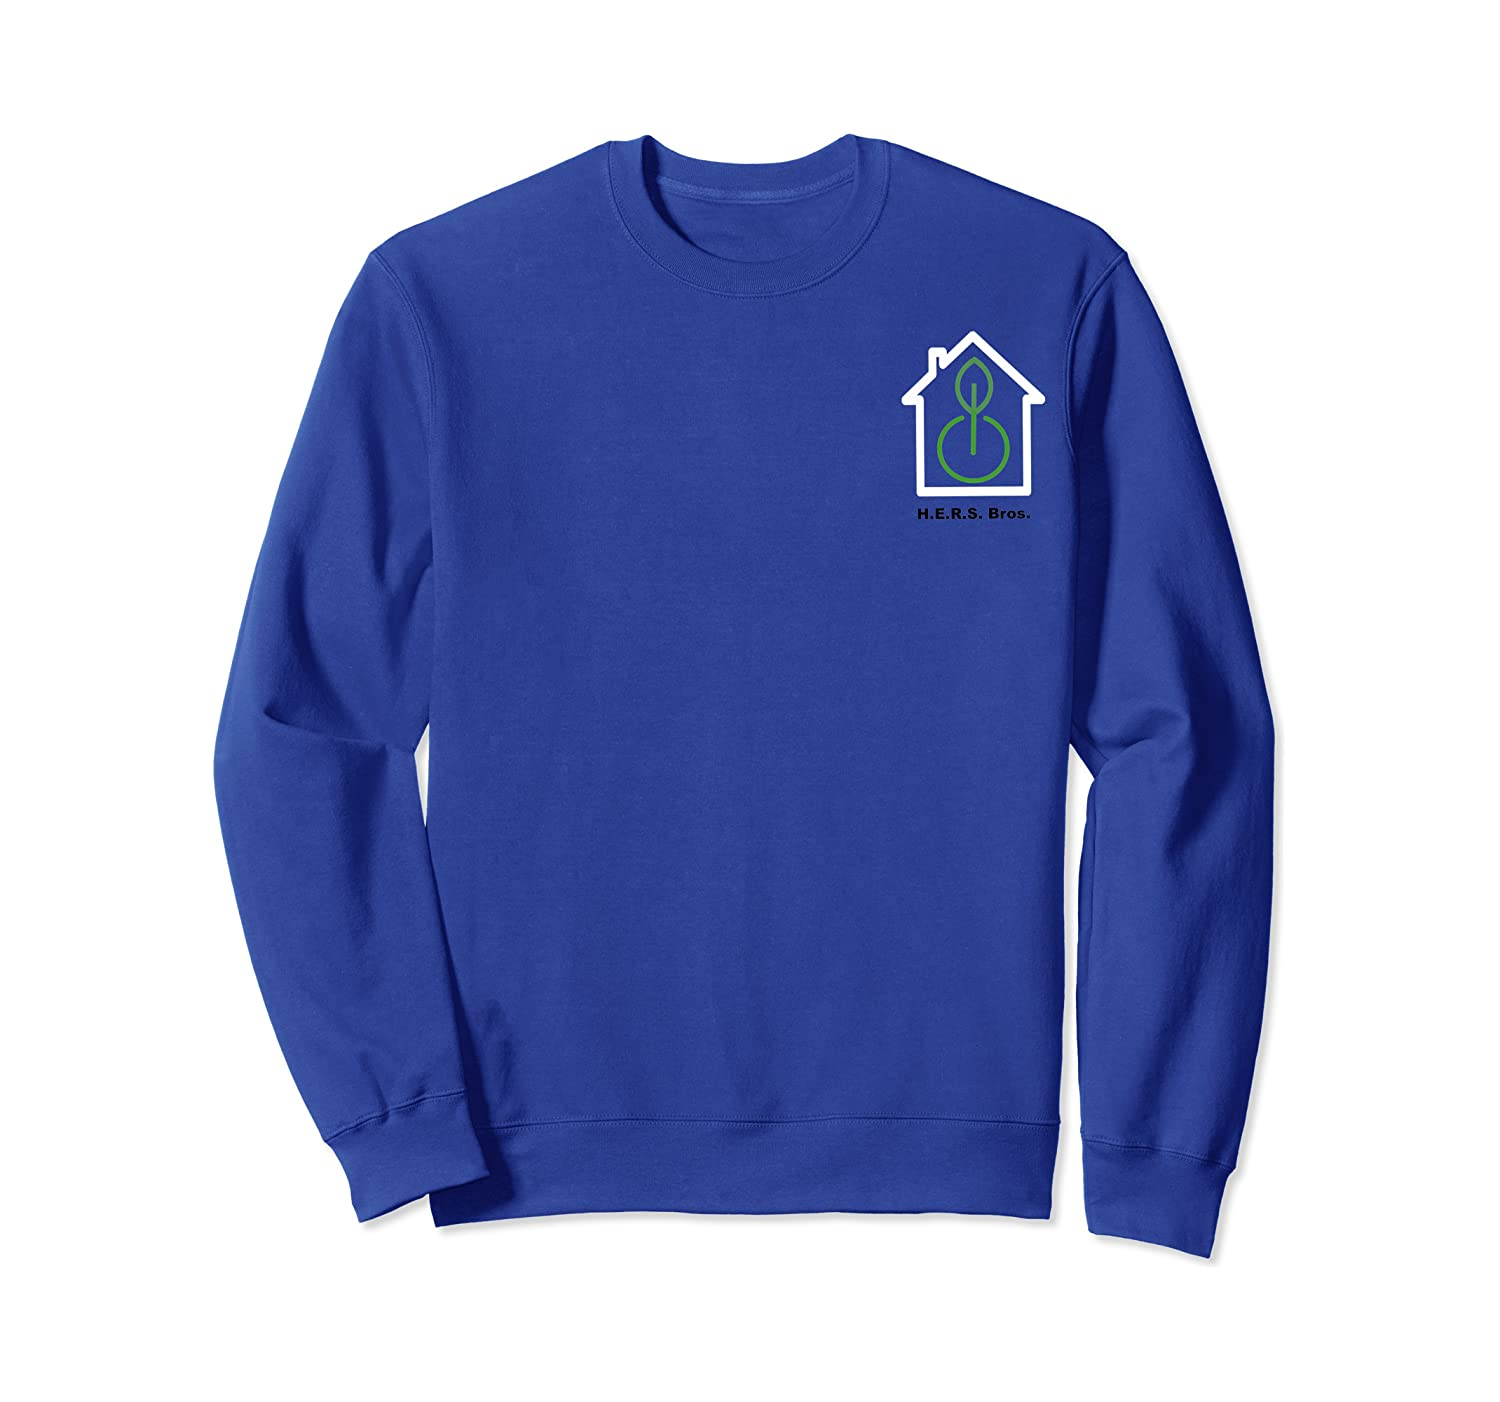 S Hers Bros Home Energy Rating System T-shirt Crewneck Sweater